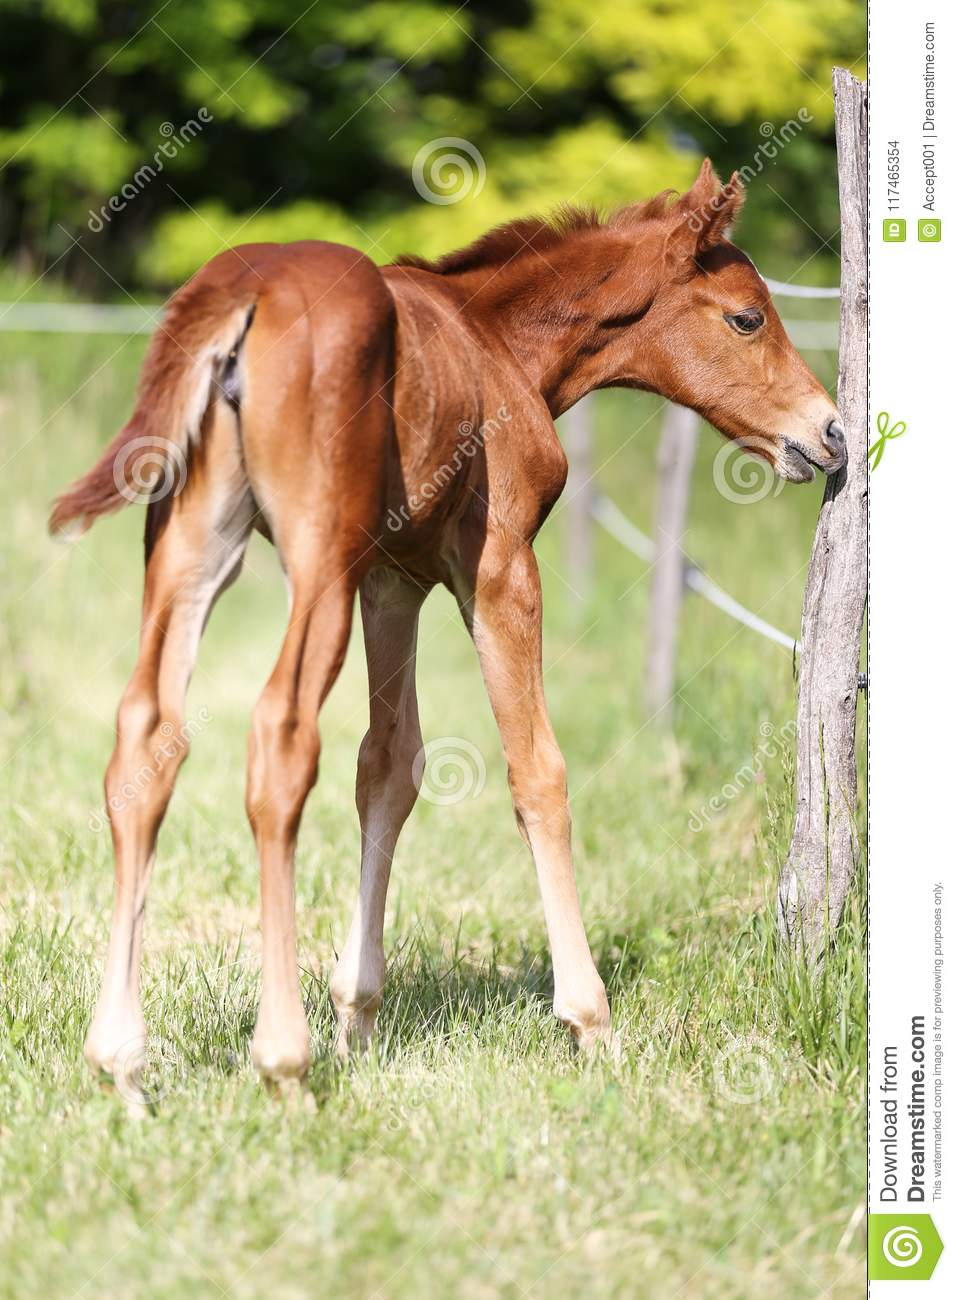 Cute Baby Horse Grazing On Pasture Stock Photo Image Of Field Farmer 117465354